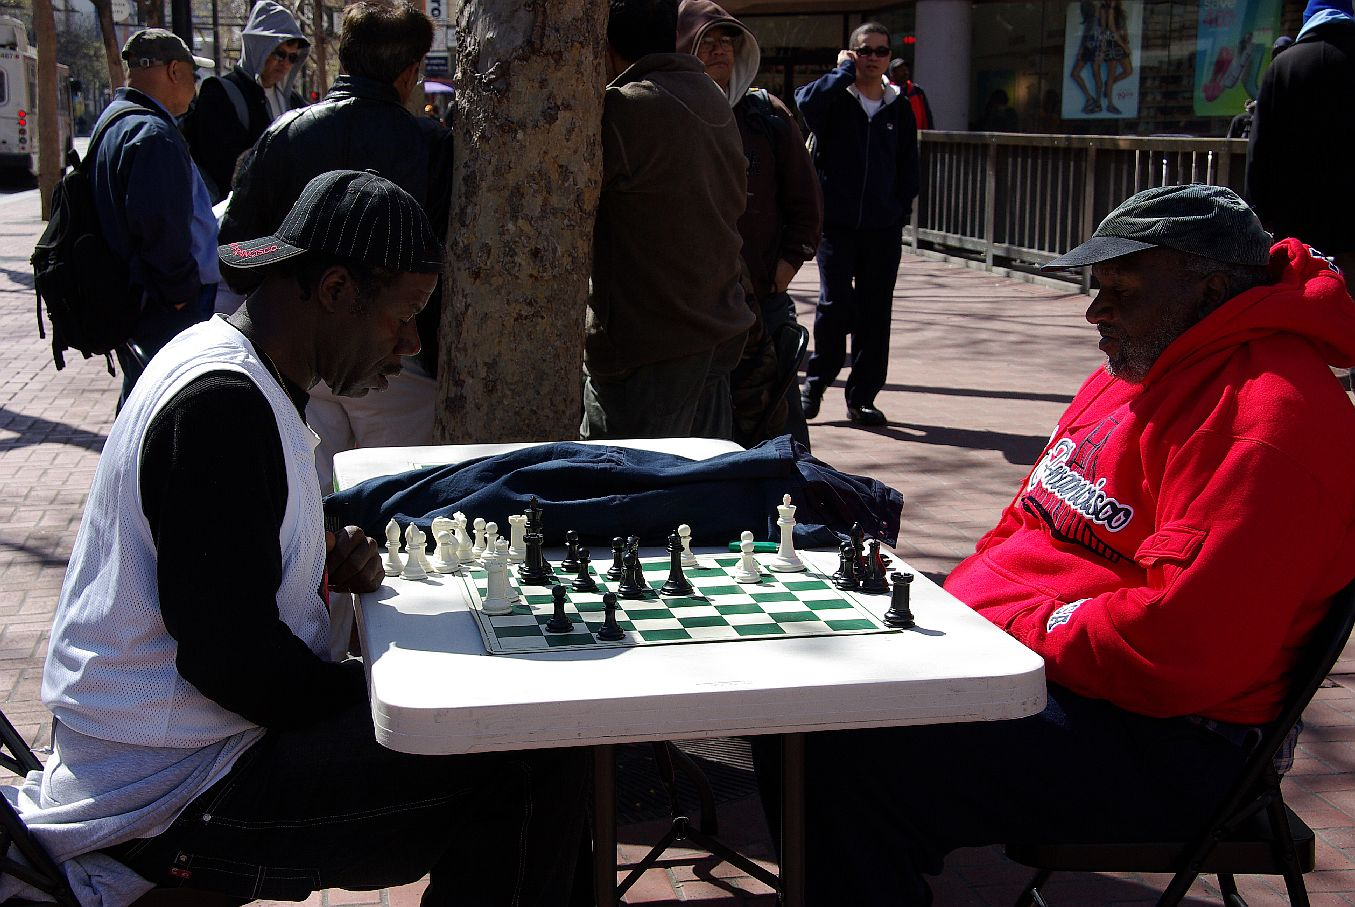 FRISCO CHESS